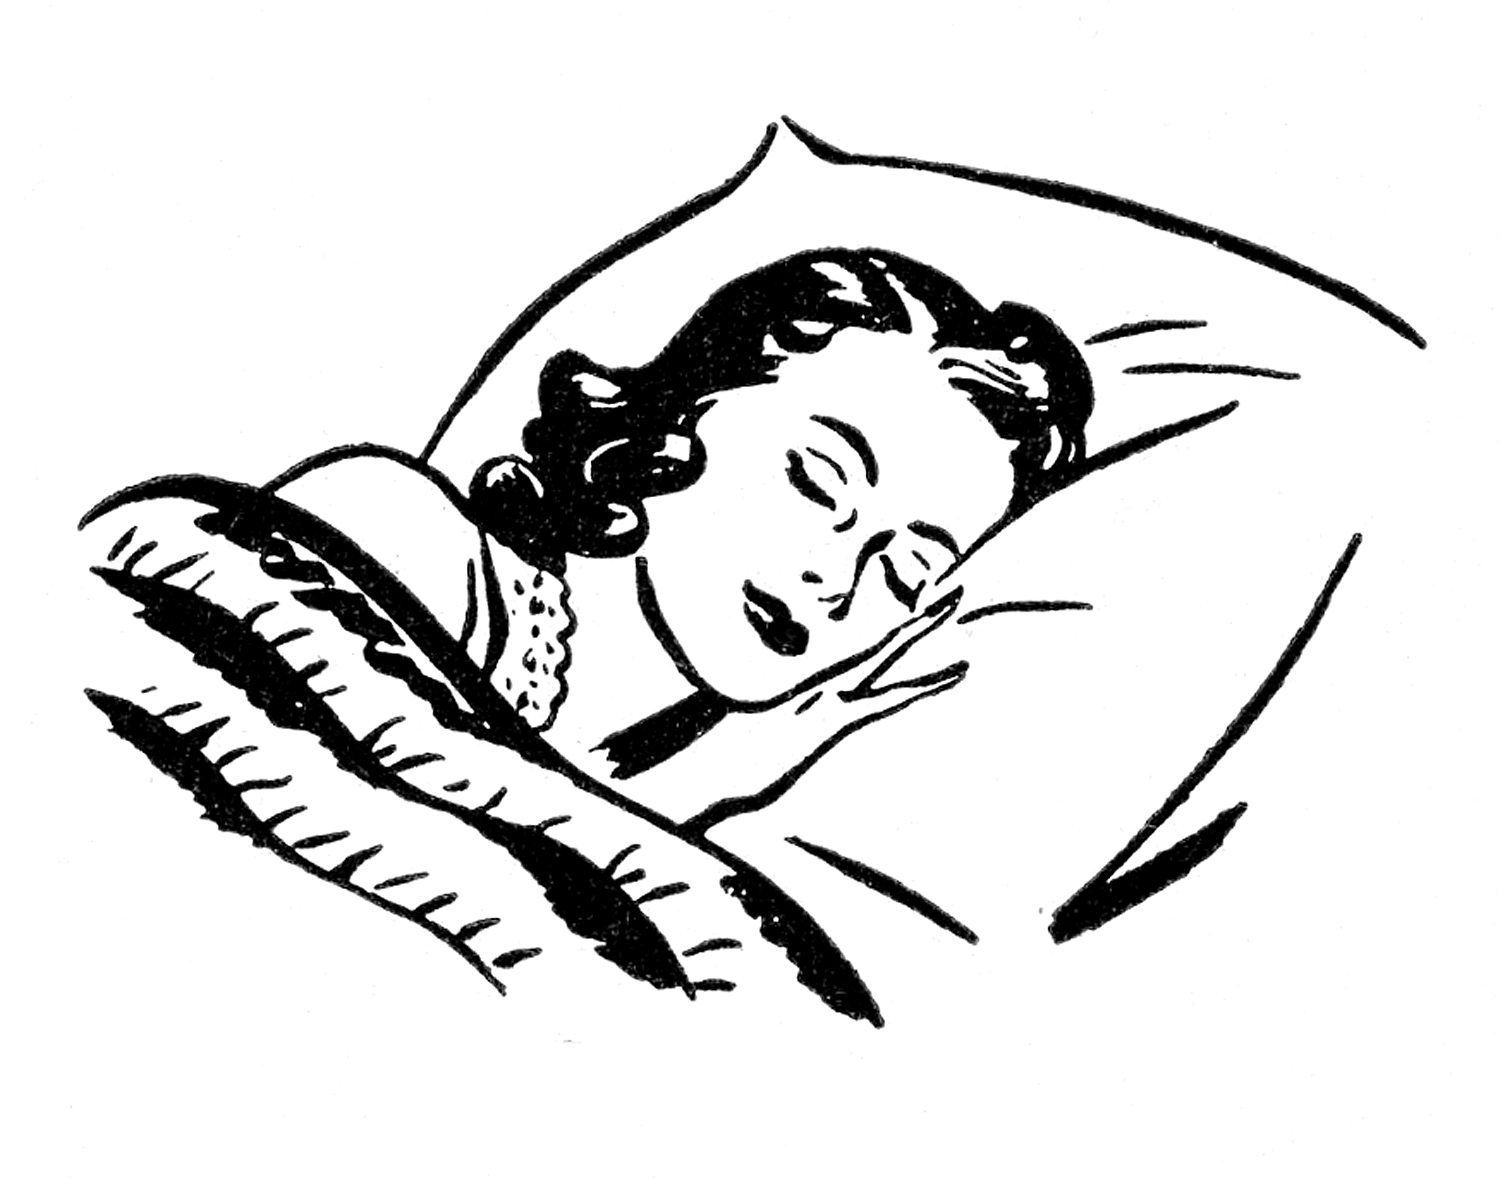 http://thegraphicsfairy.com/wp-content/uploads/2013/06/Sleeping-Lady-Retro-Image-GraphicsFairy.jpg